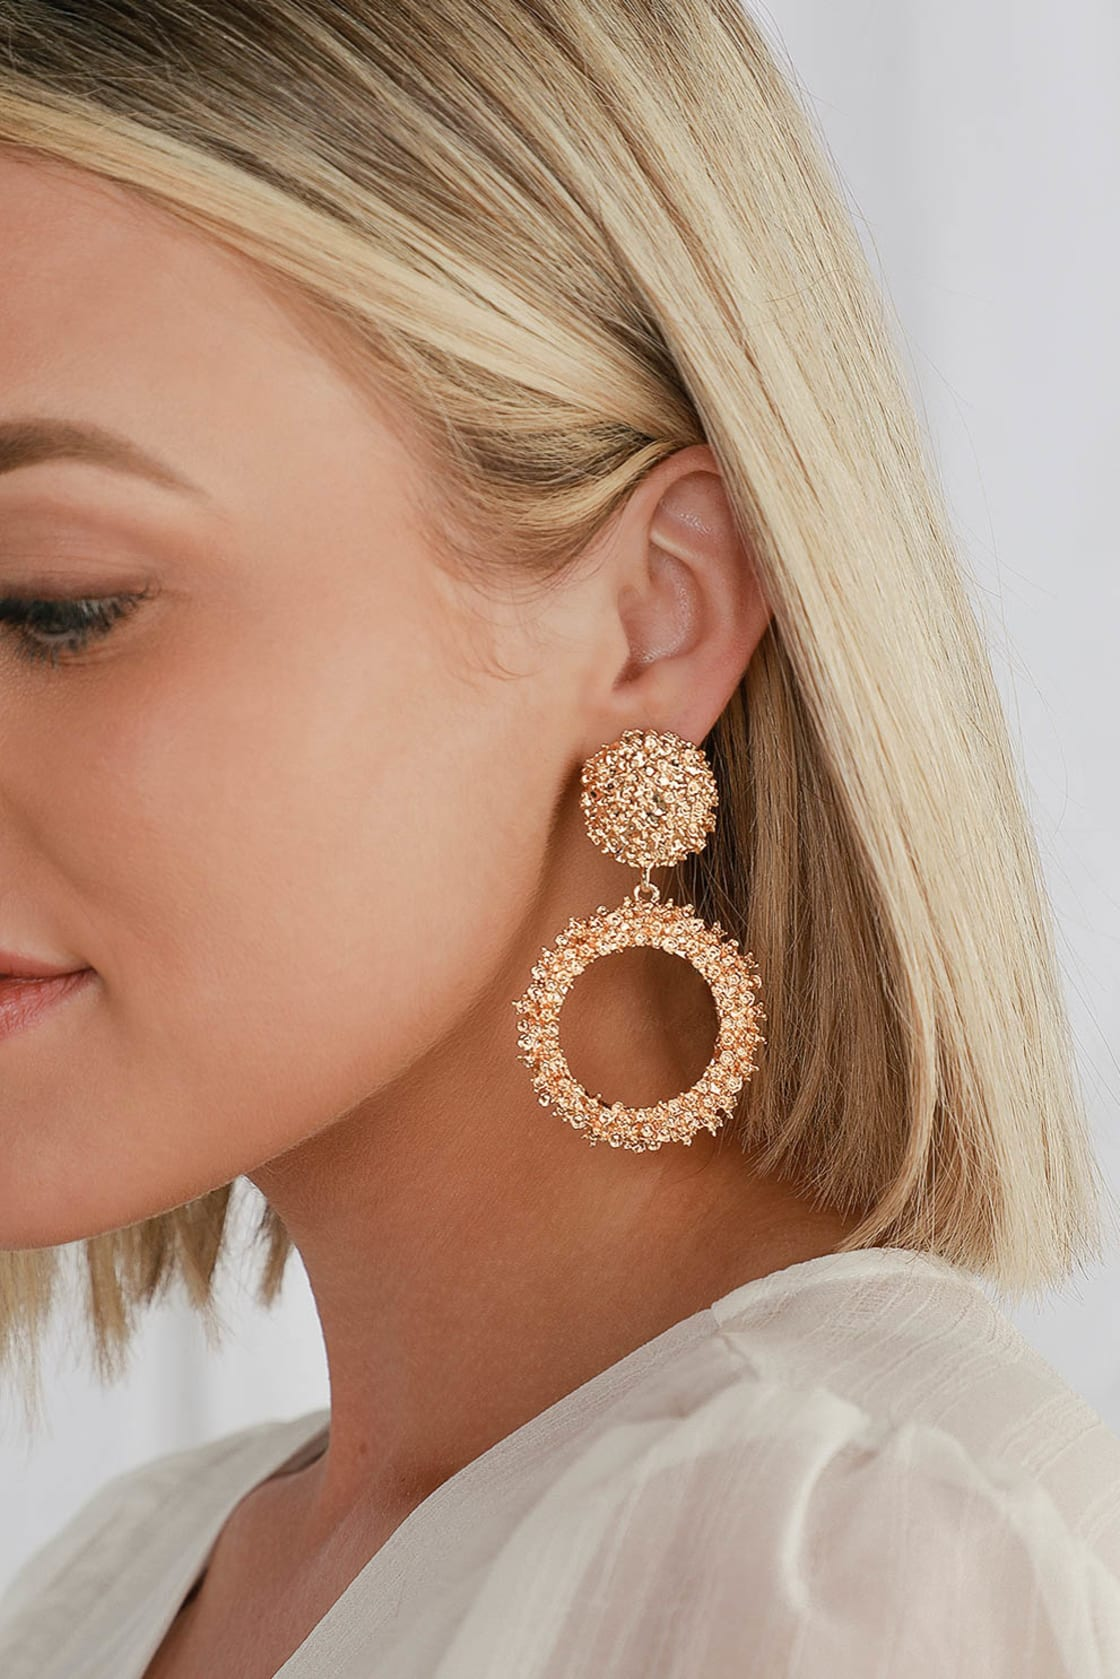 Gold statement earrings for summer